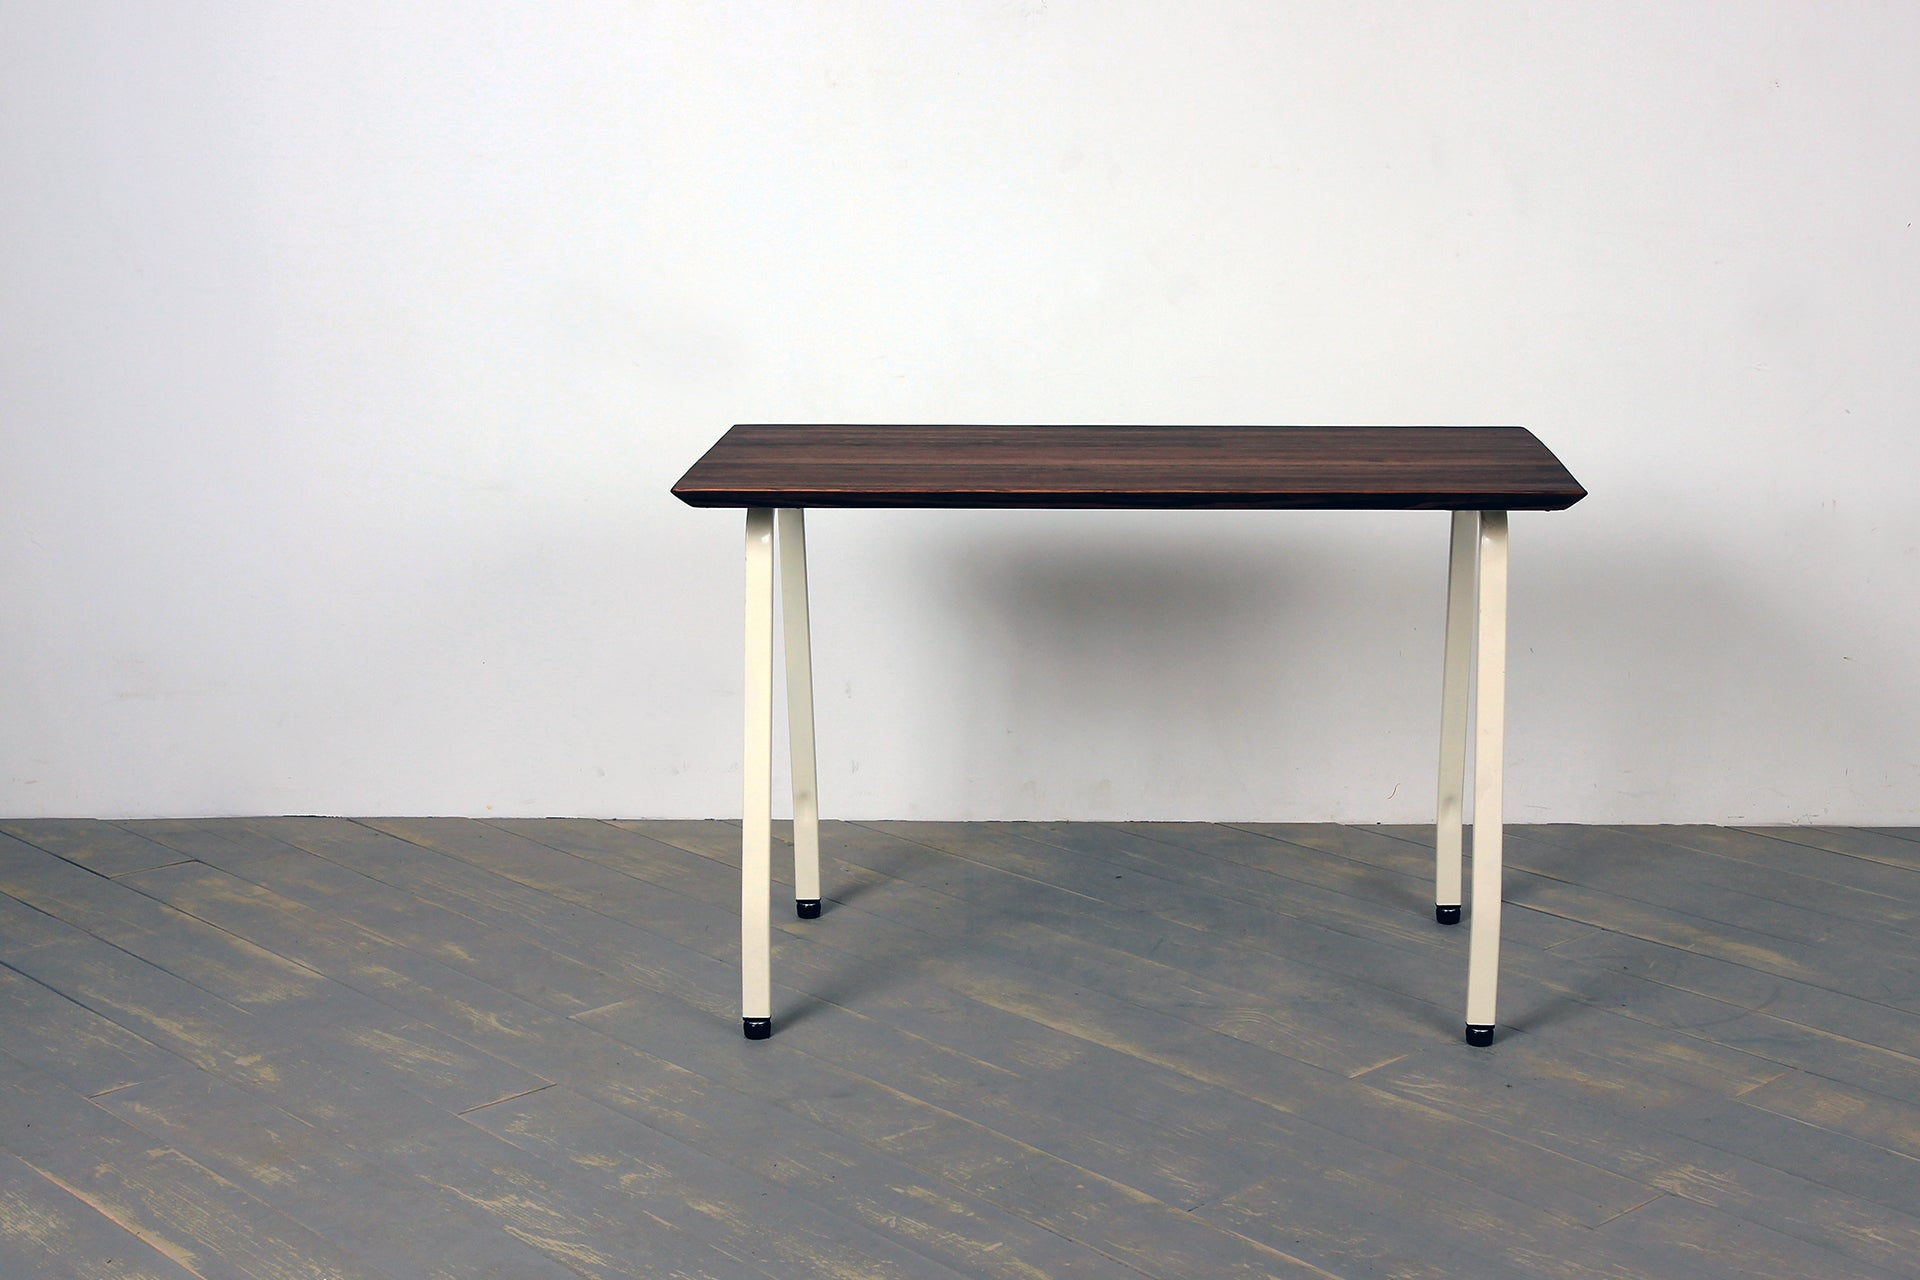 The Arthropod Bevel Desk in Warm Brown and 9016 Traffic White